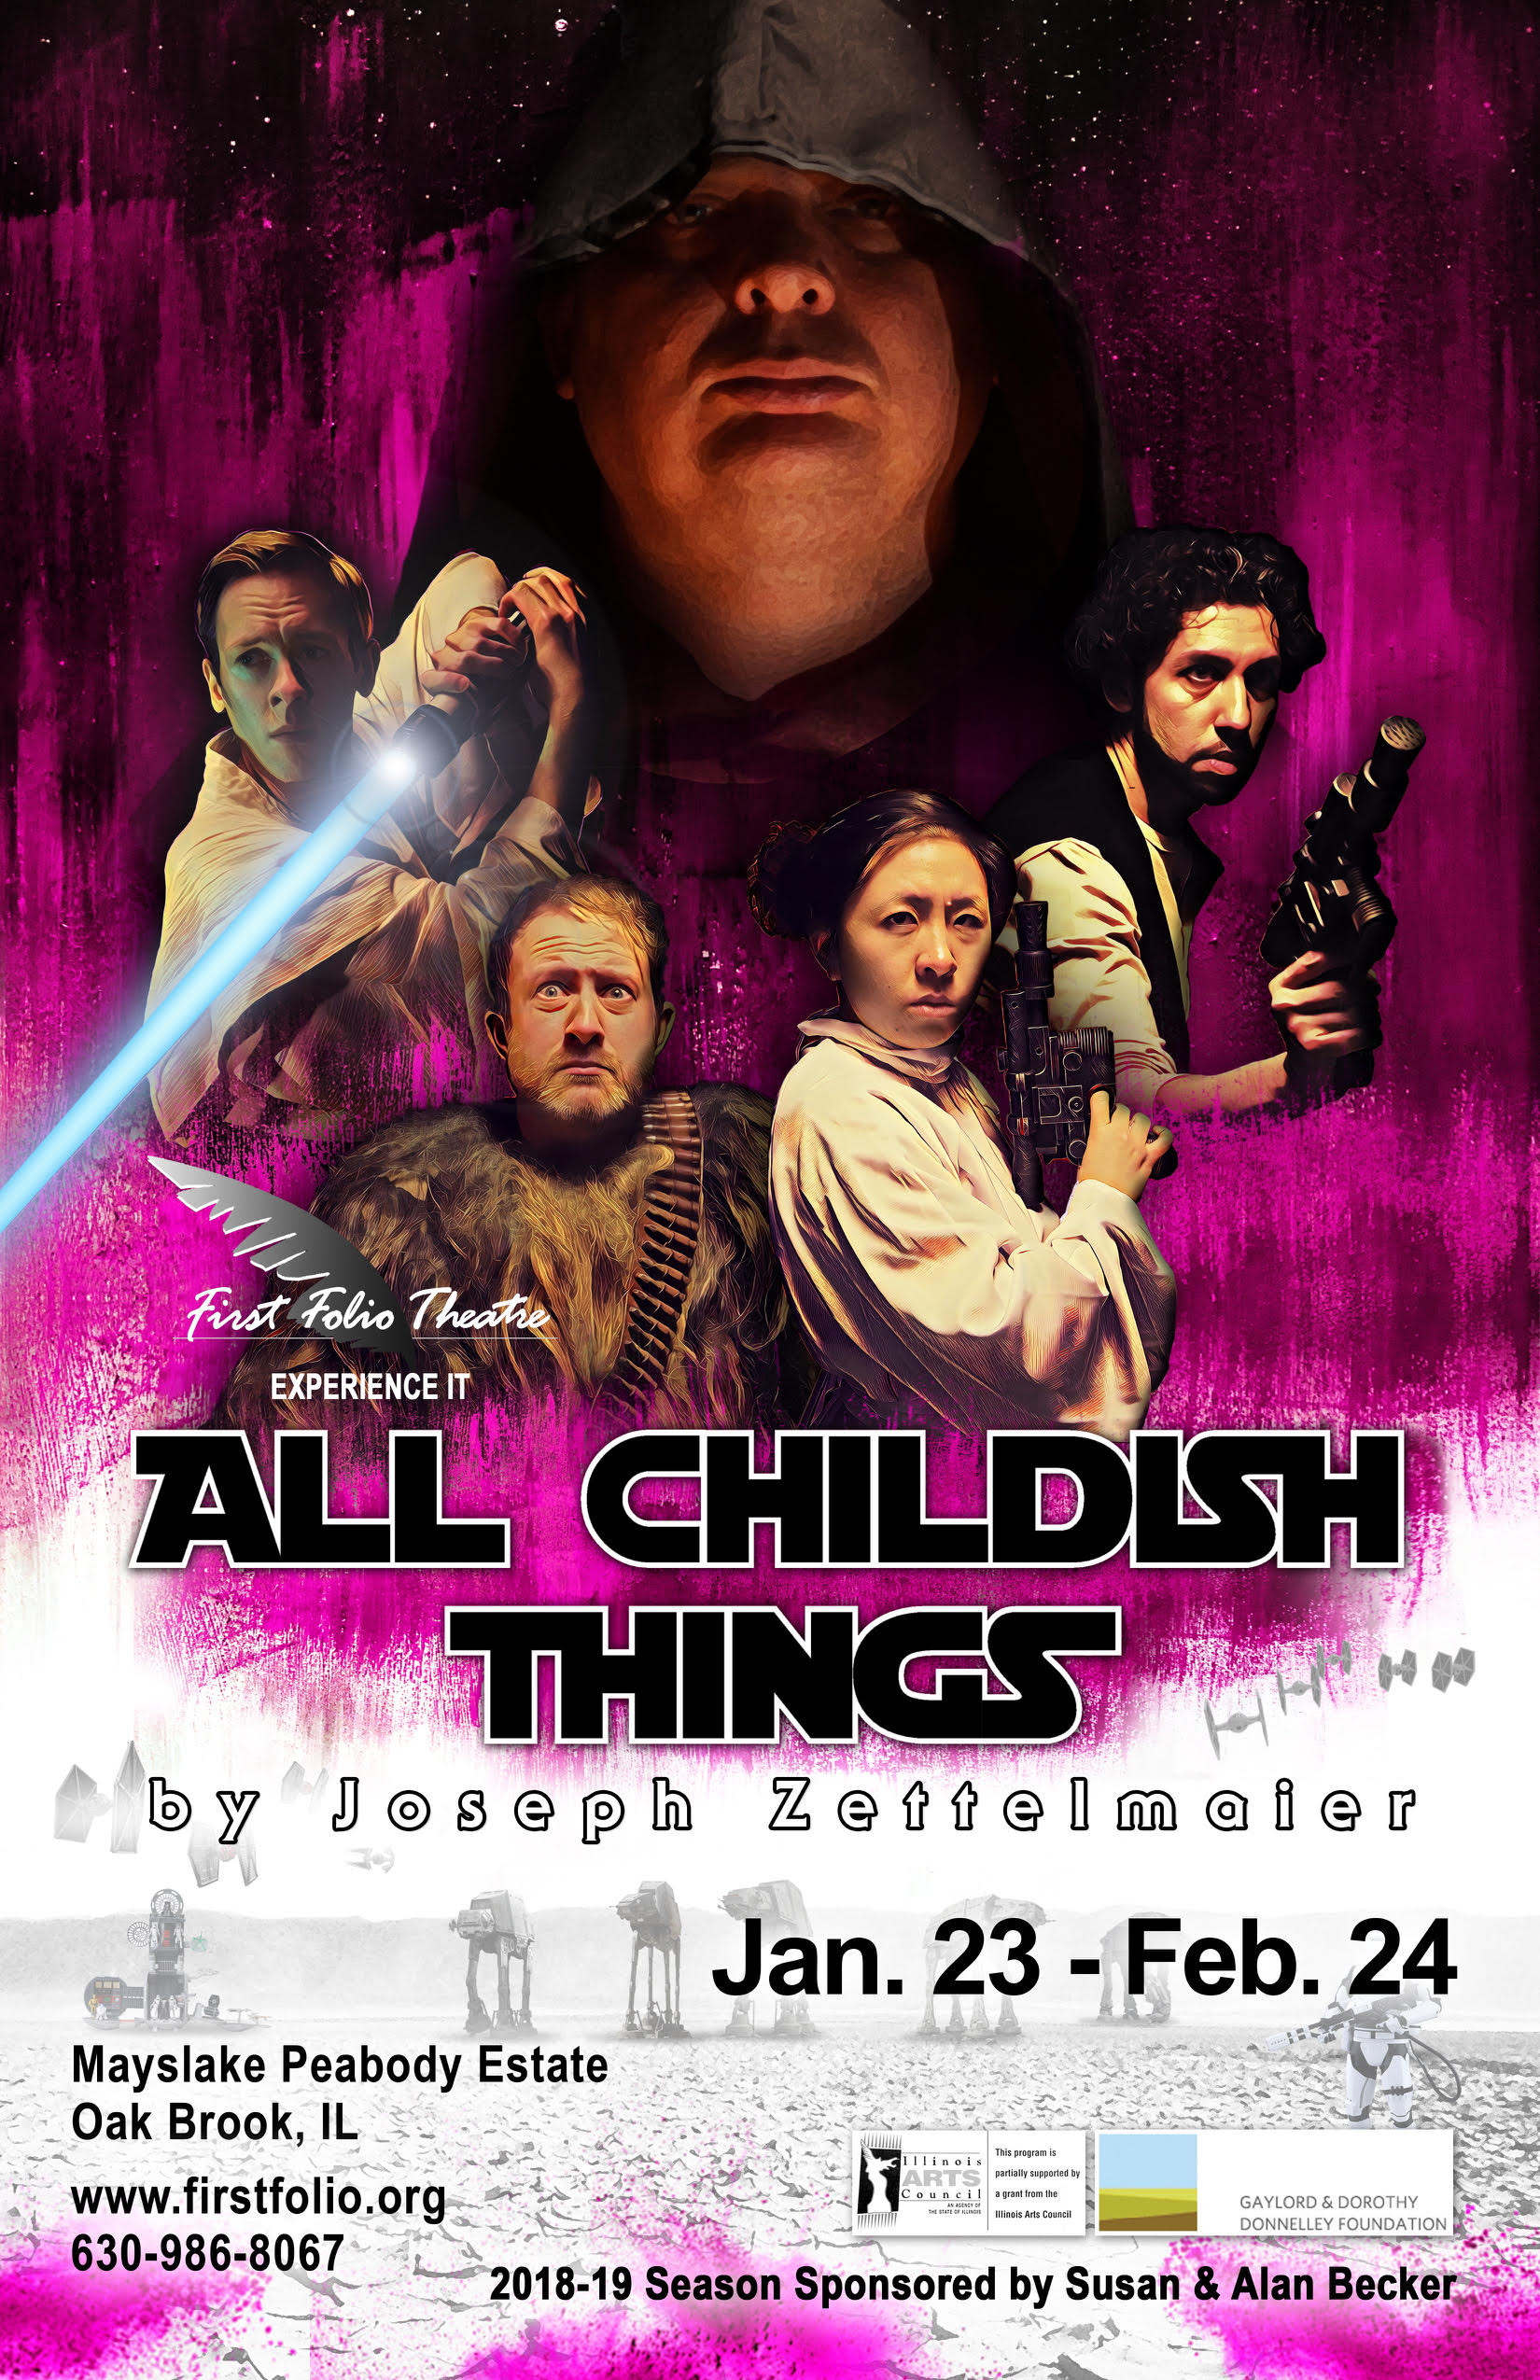 All Childish Things